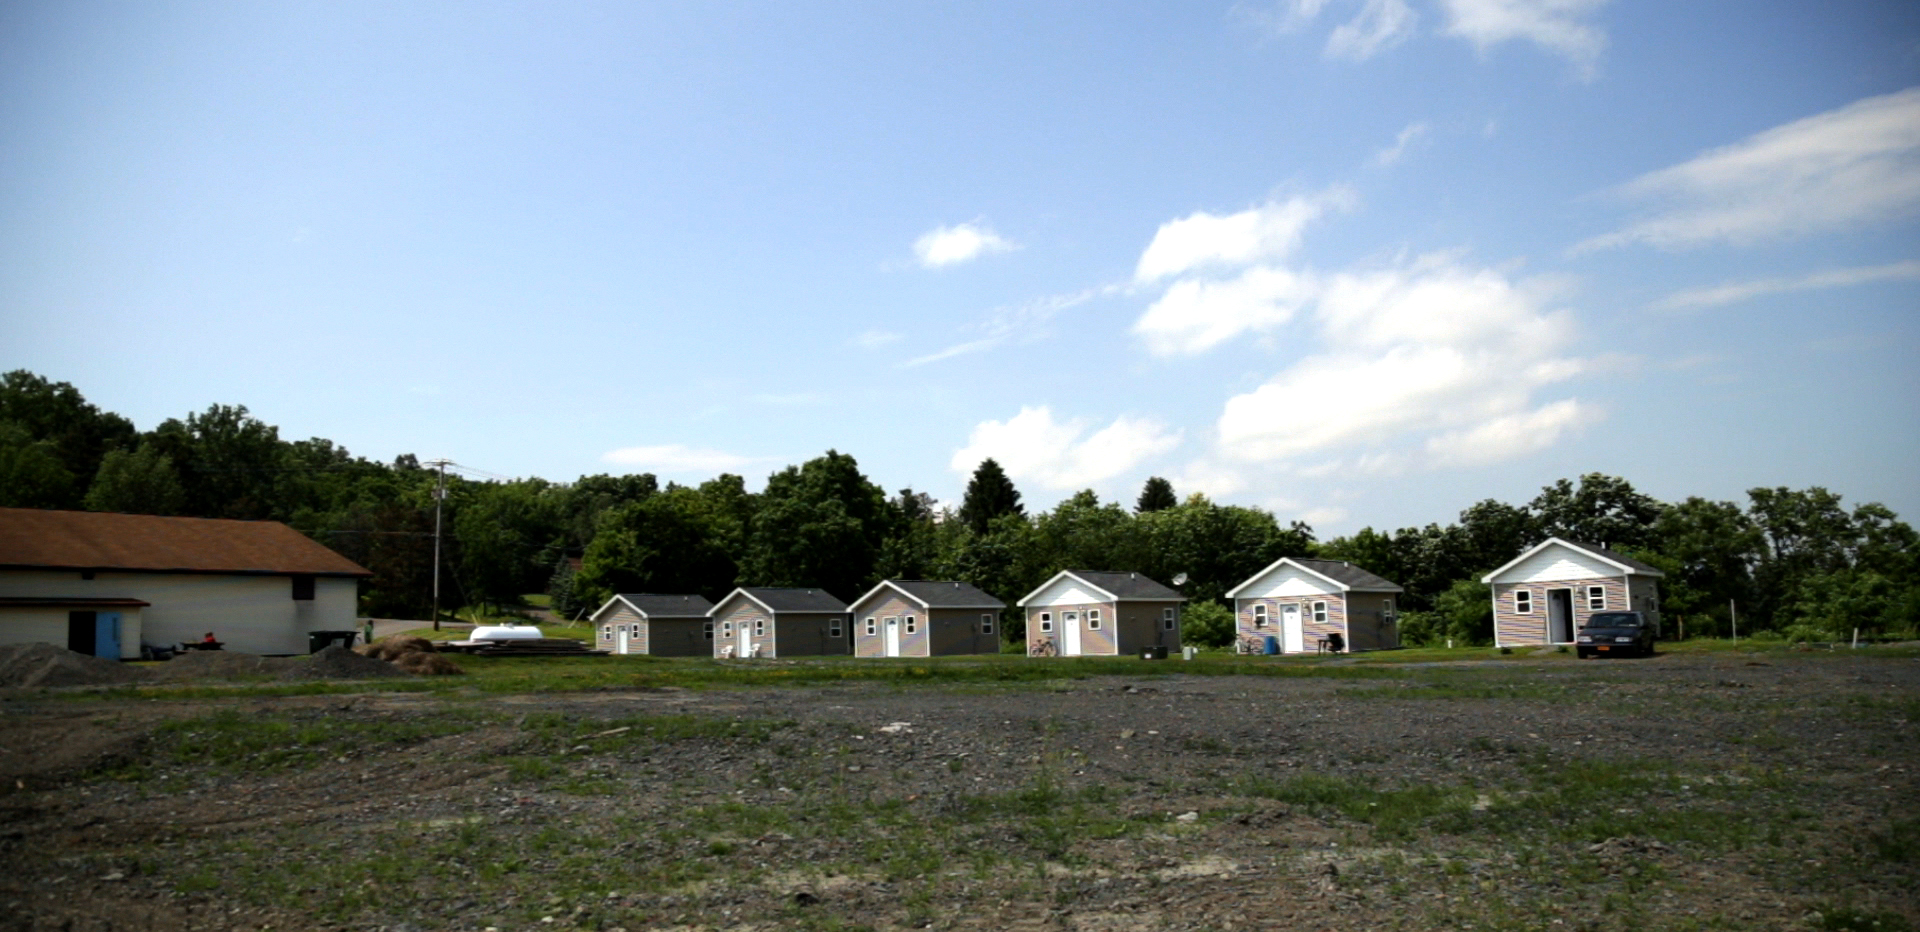 Second Wind Cottages, a community of formerly homeless men near Ithaca, New York. (Photo: John Light/Moyers & Company)